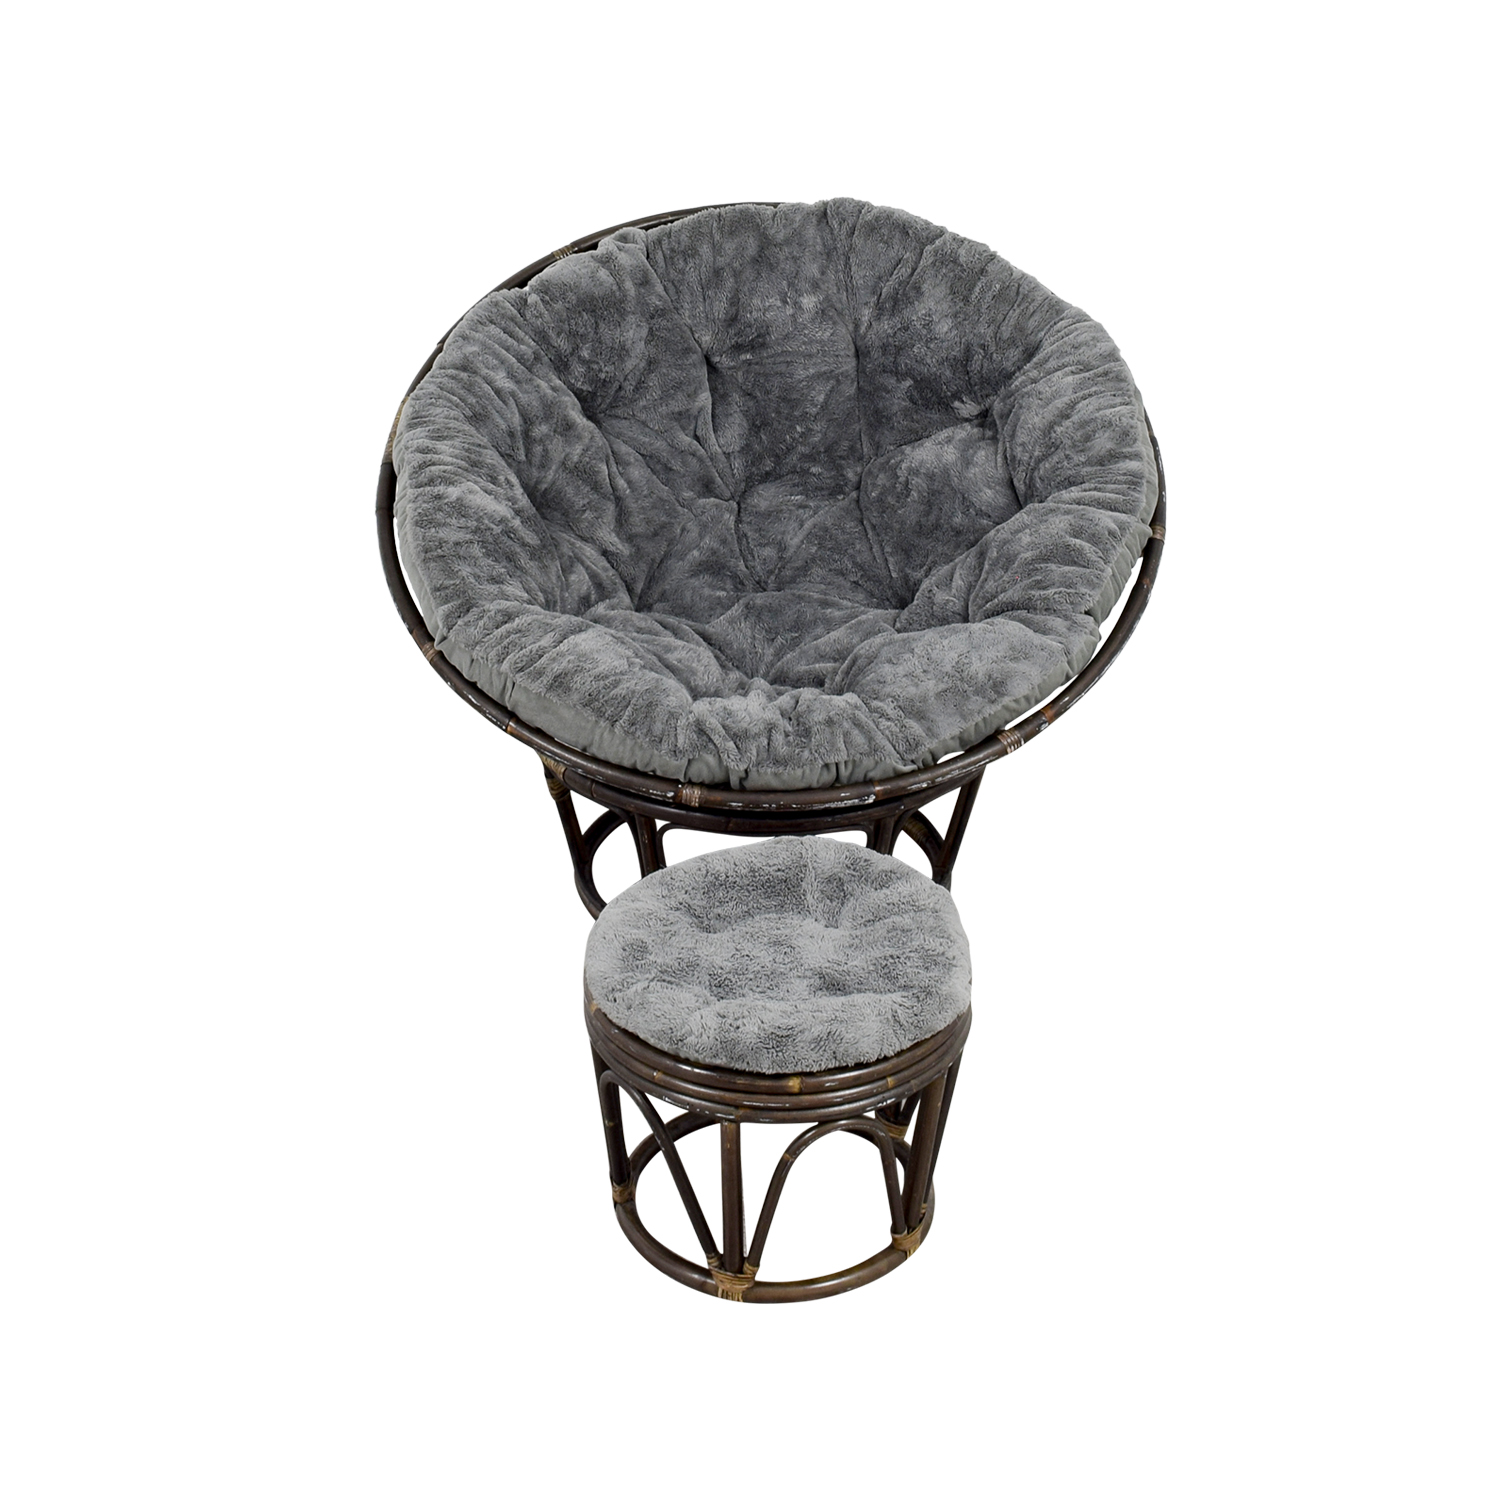 Pier 1 Papasan Chair with Stool / Accent Chairs